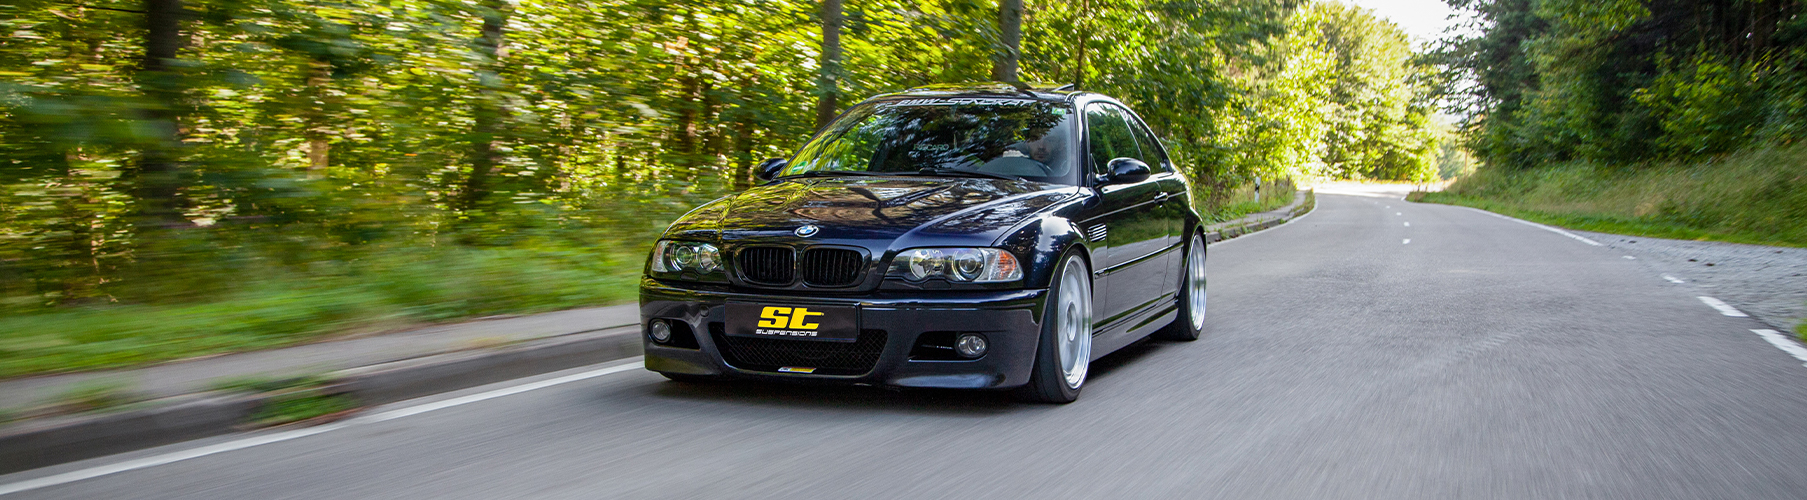 The ST XTA Coilover suspension kit, which is manufactured at KW automotive in Germany, allows a maximum lowering.